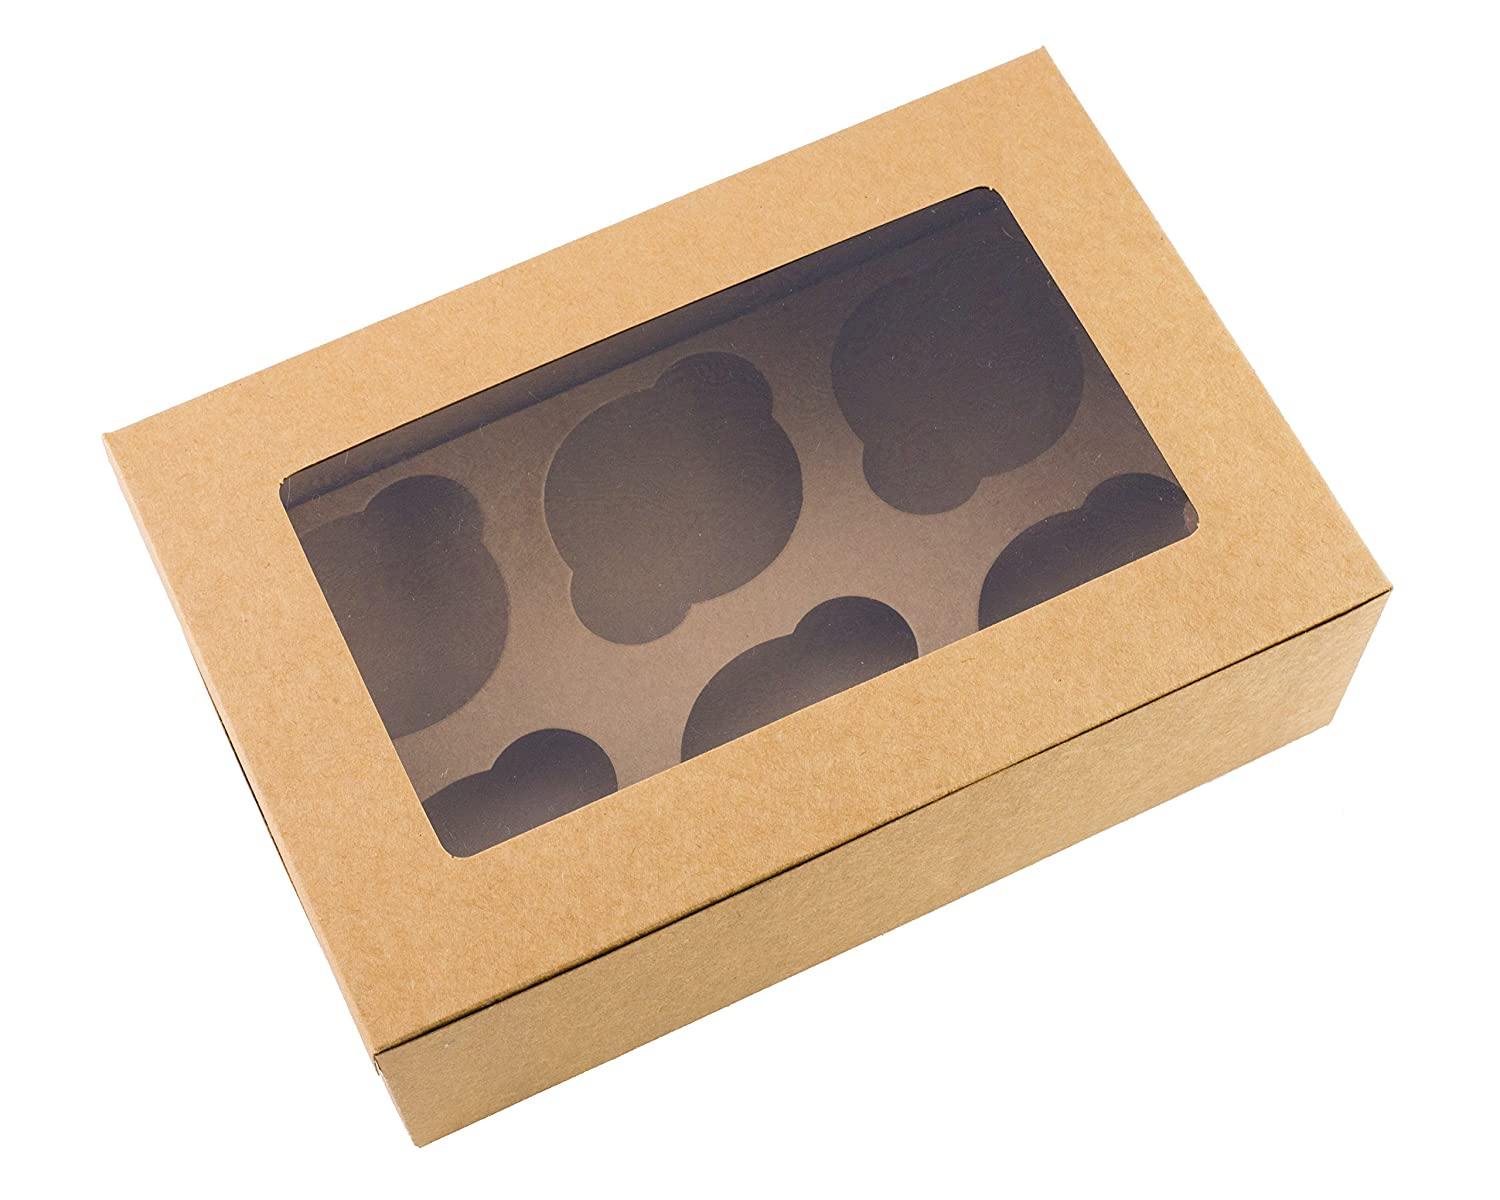 10 x Cupcake Boxes Brown Holds 6 Cakes Ibex Retail